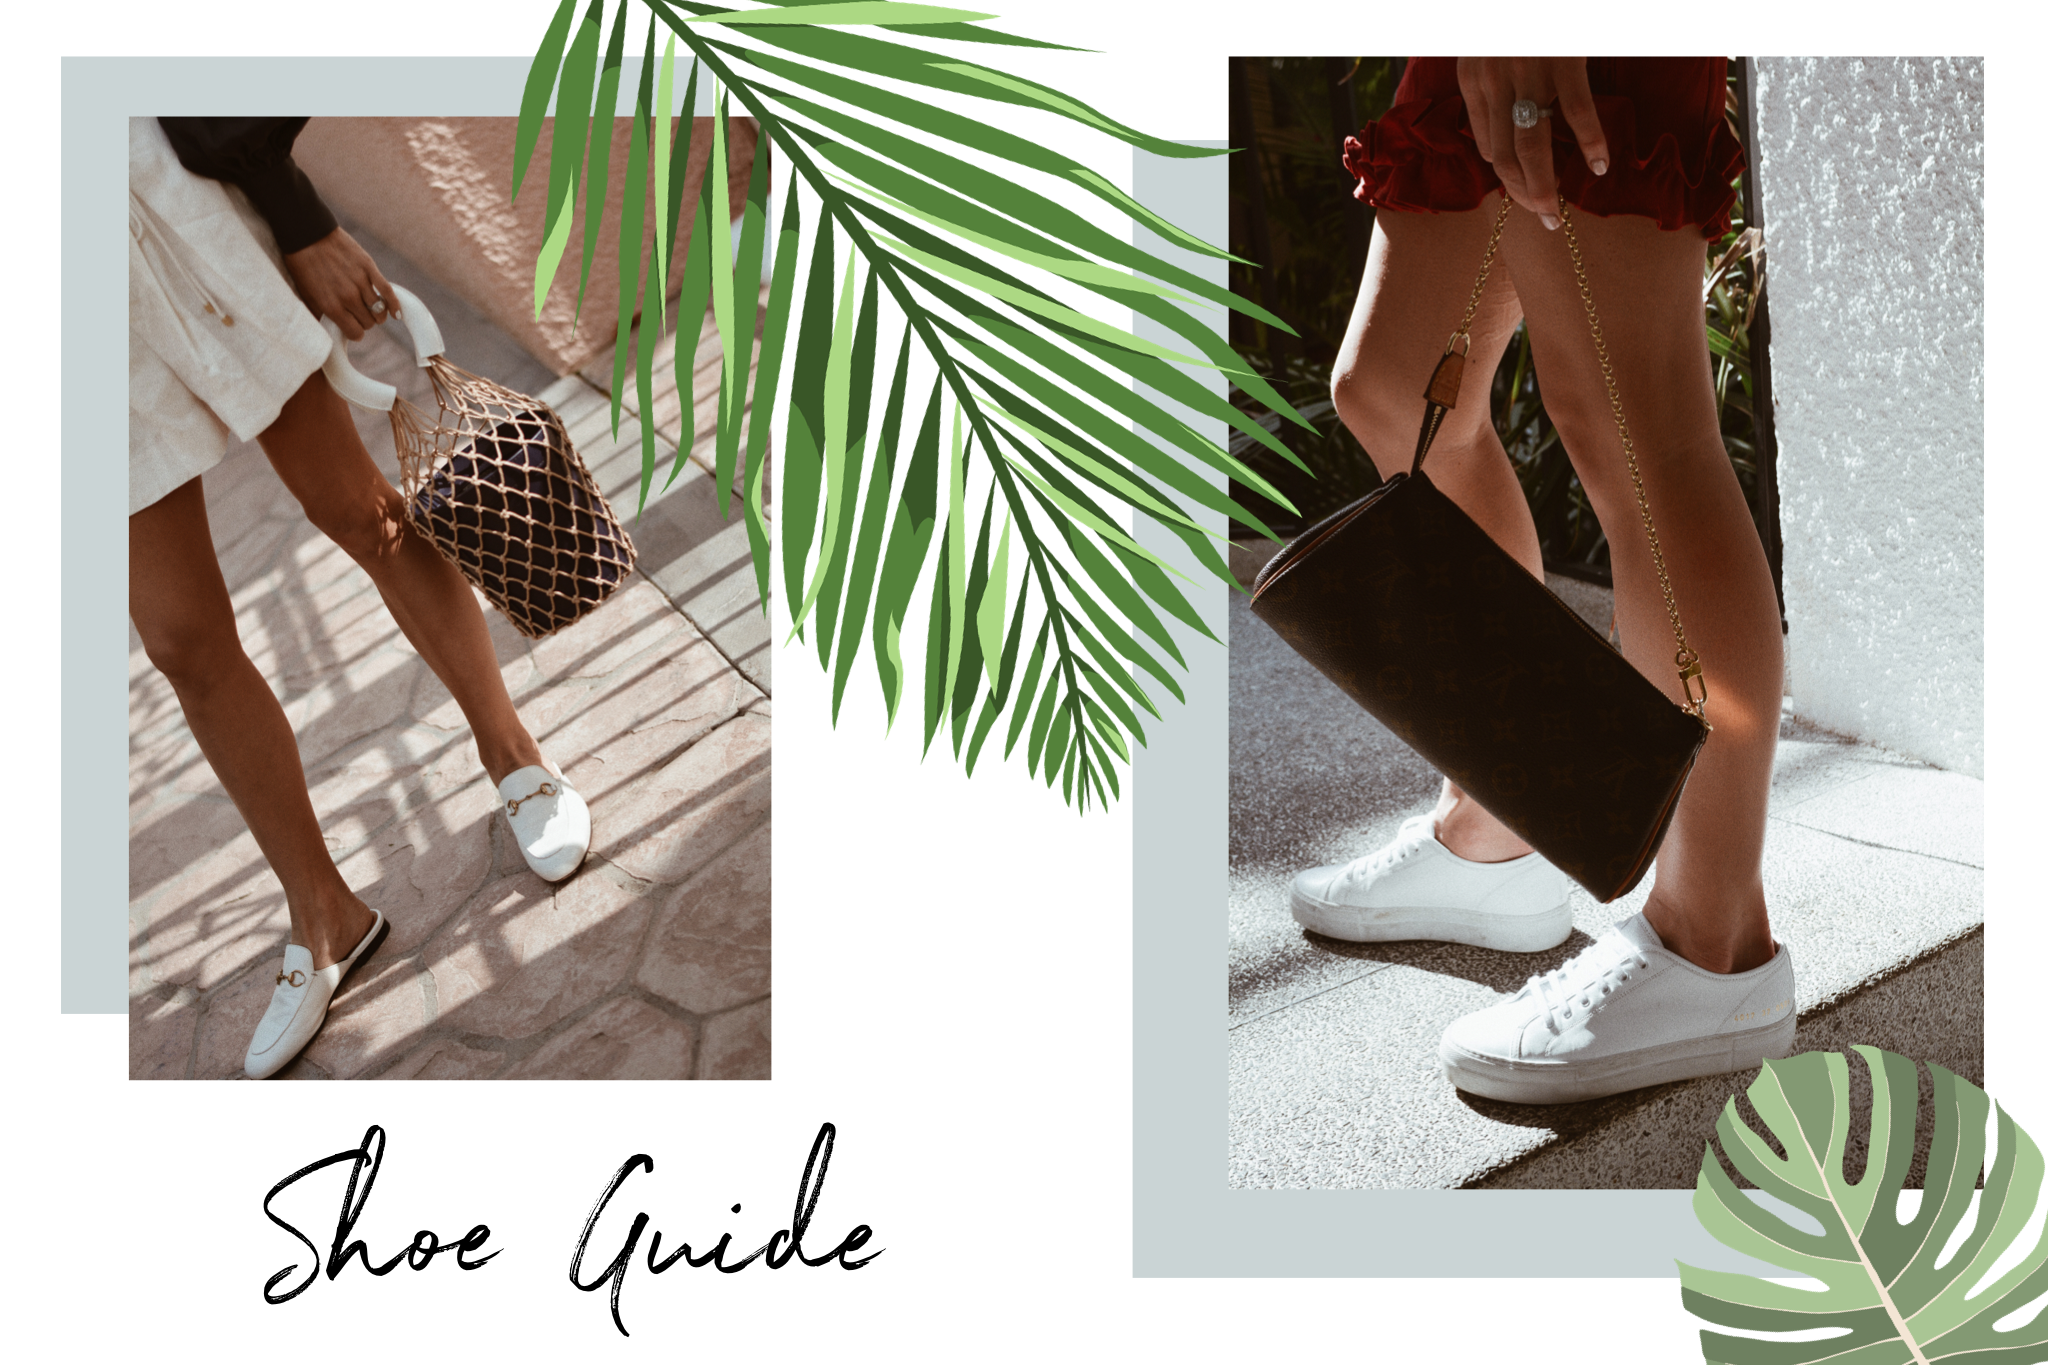 nastia_liukin_everyday_shoe_guide_shopping